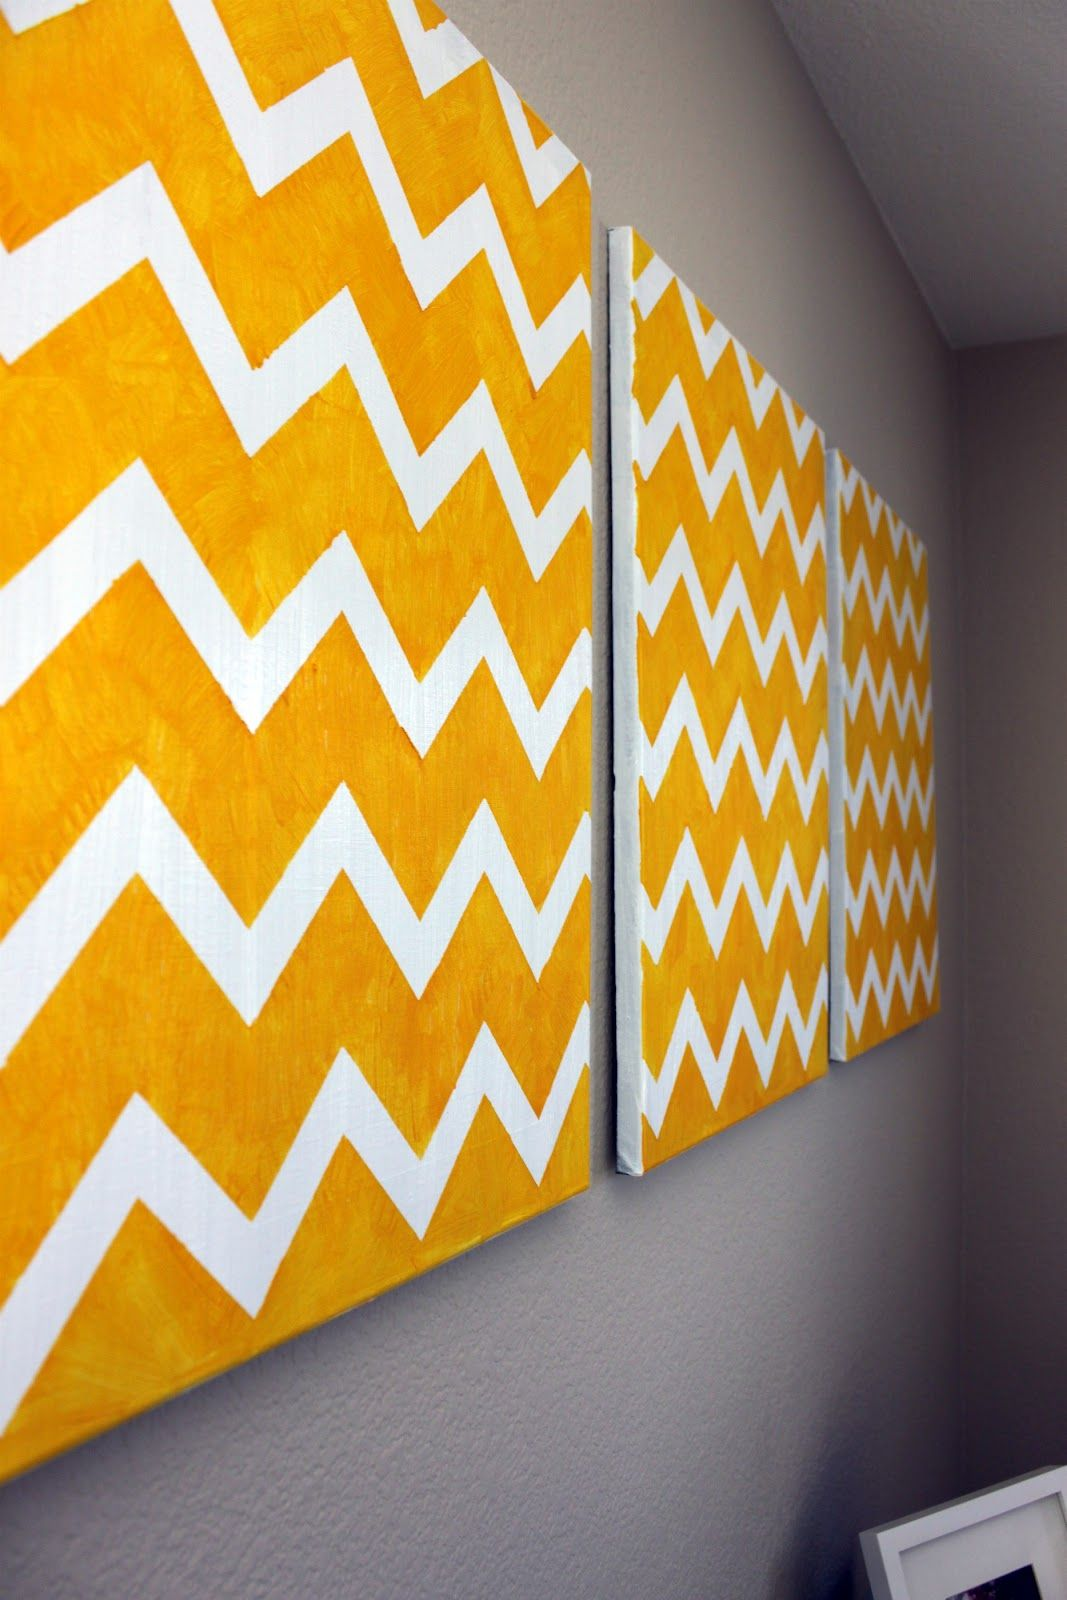 Momma Rake: Tutorials | Chevron | Pinterest | Tutorials and School